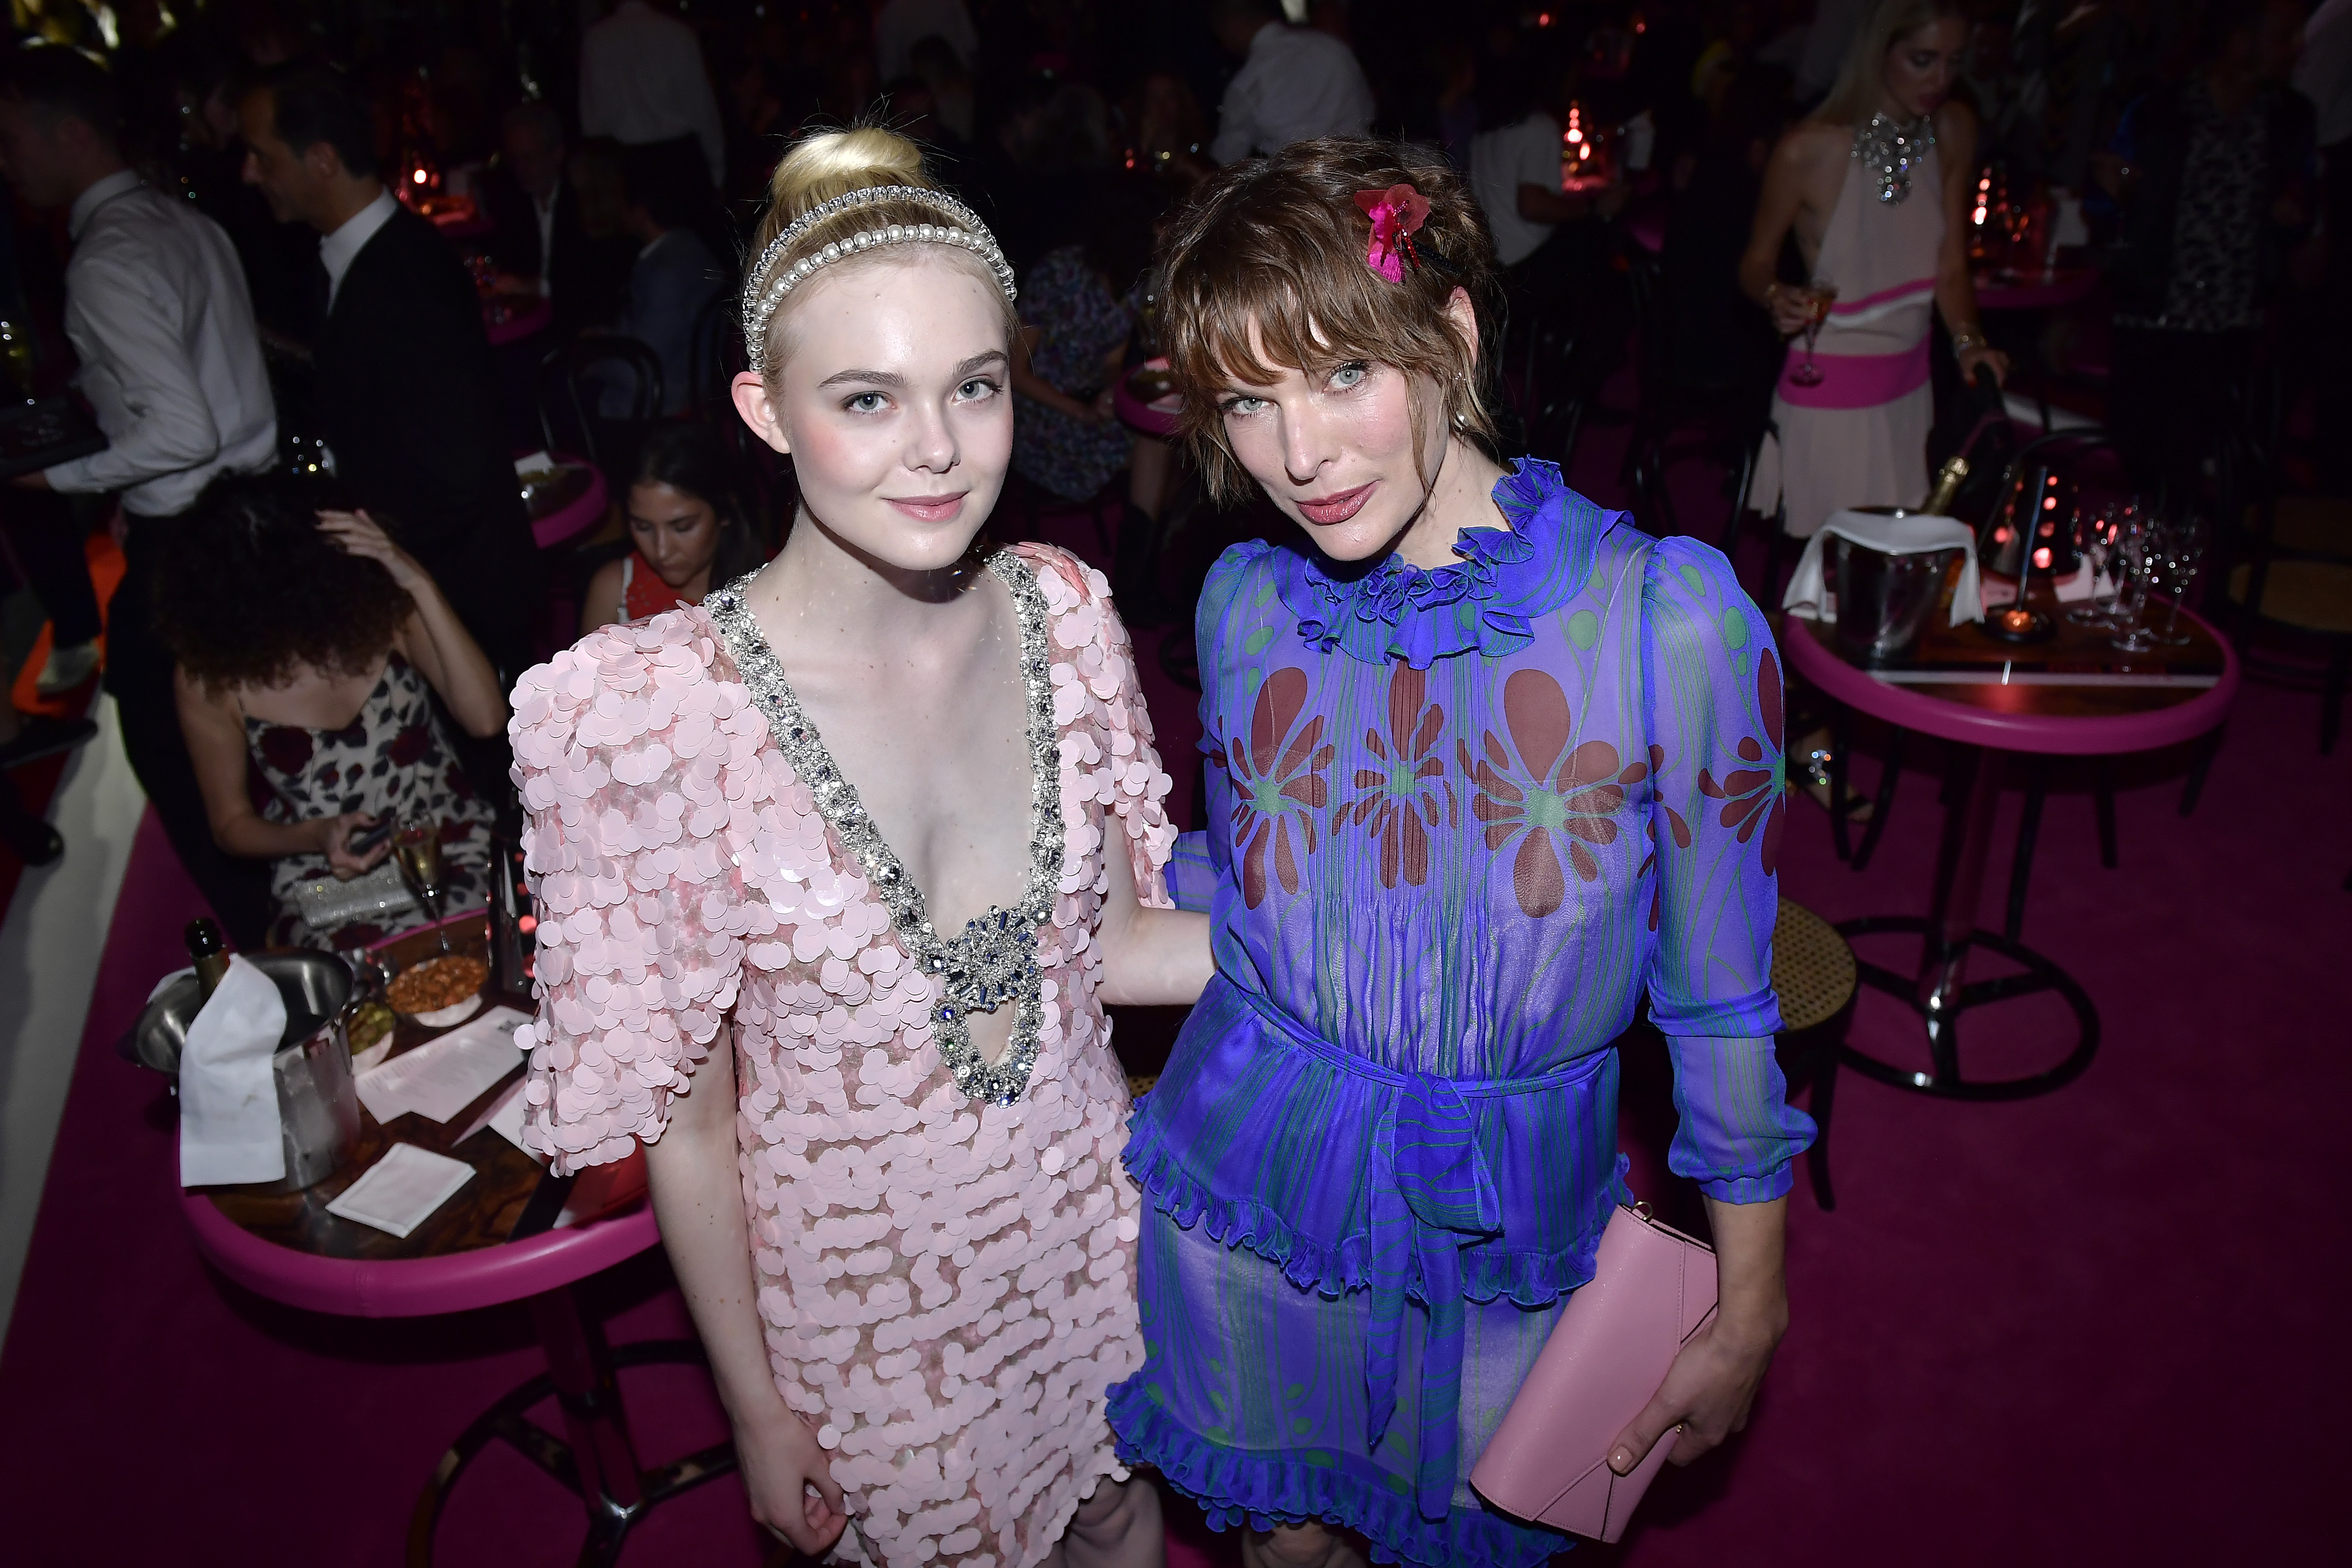 PARIS, FRANCE - JULY 02:  Elle Fanning and  Milla Jovovich attend Miu Miu Cruise Collection show as part of Haute Couture Paris Fashion Week on July 2, 2017 in Paris, France.  (Photo by Victor Boyko/Getty Images for Miu Miu) *** Local Caption *** Elle Fanning, Milla Jovovich